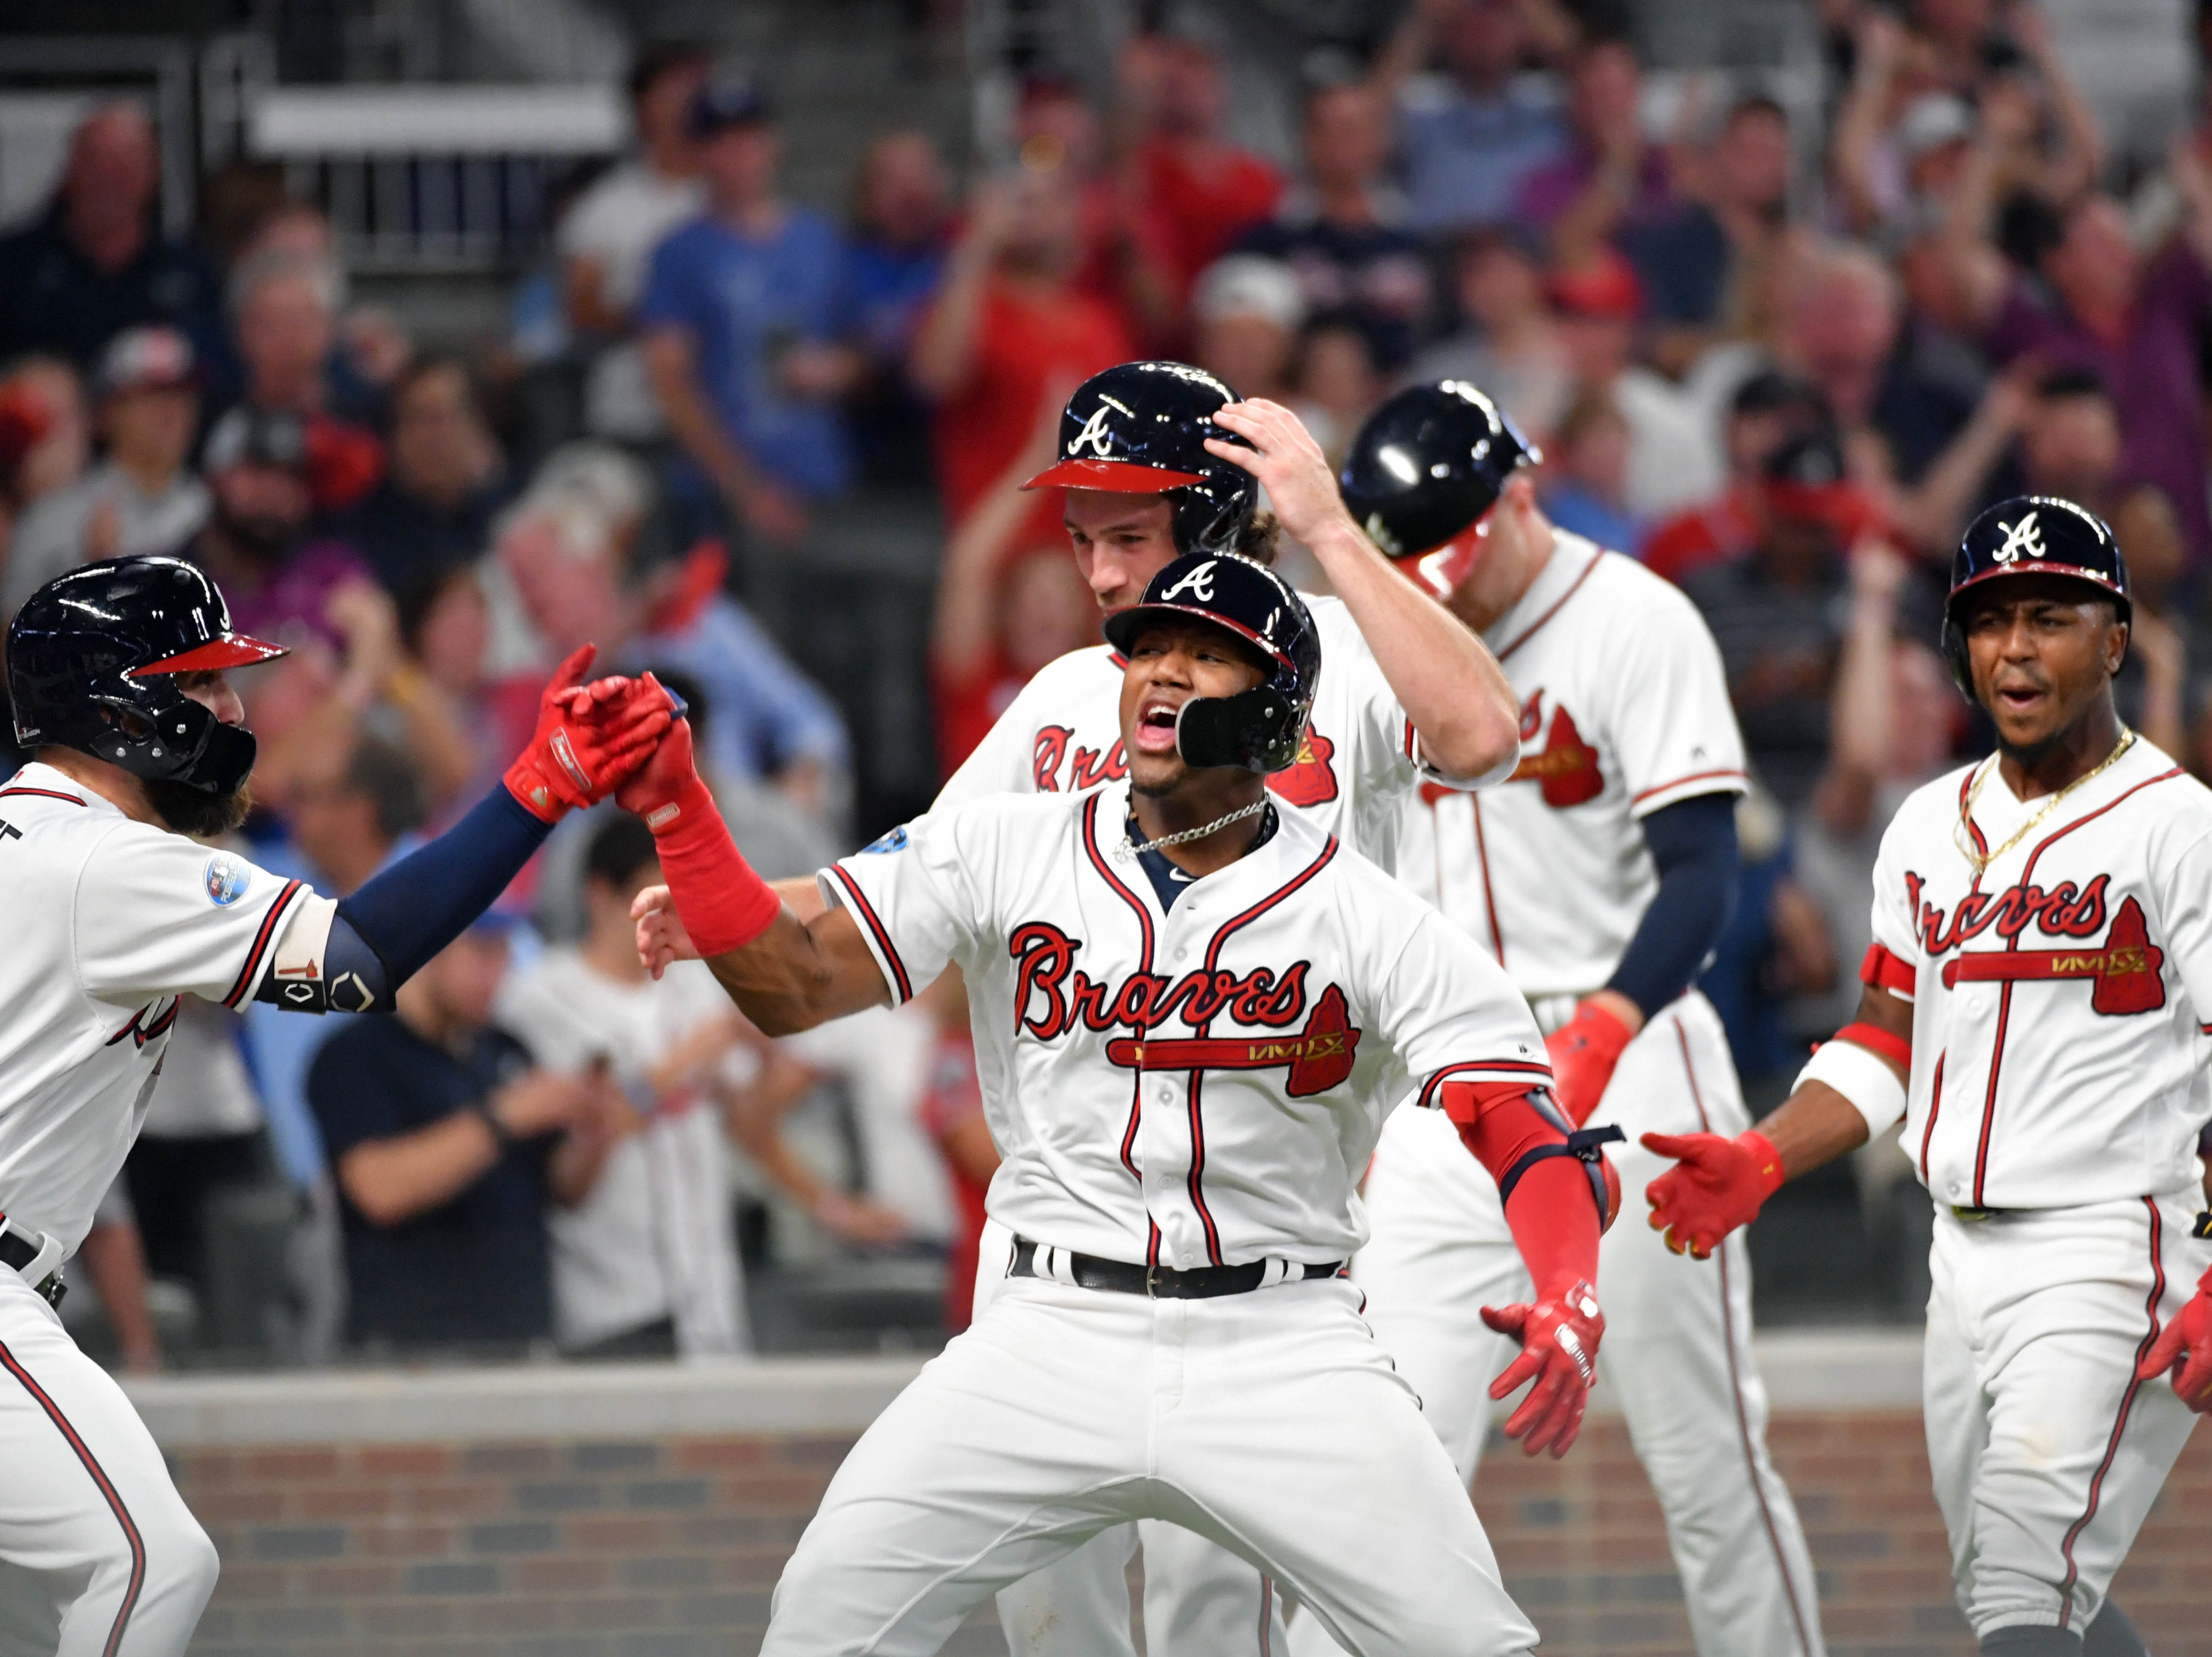 NLDS Game 3: Braves left fielder Ronald Acuna celebrates his grand slam in the second inning.